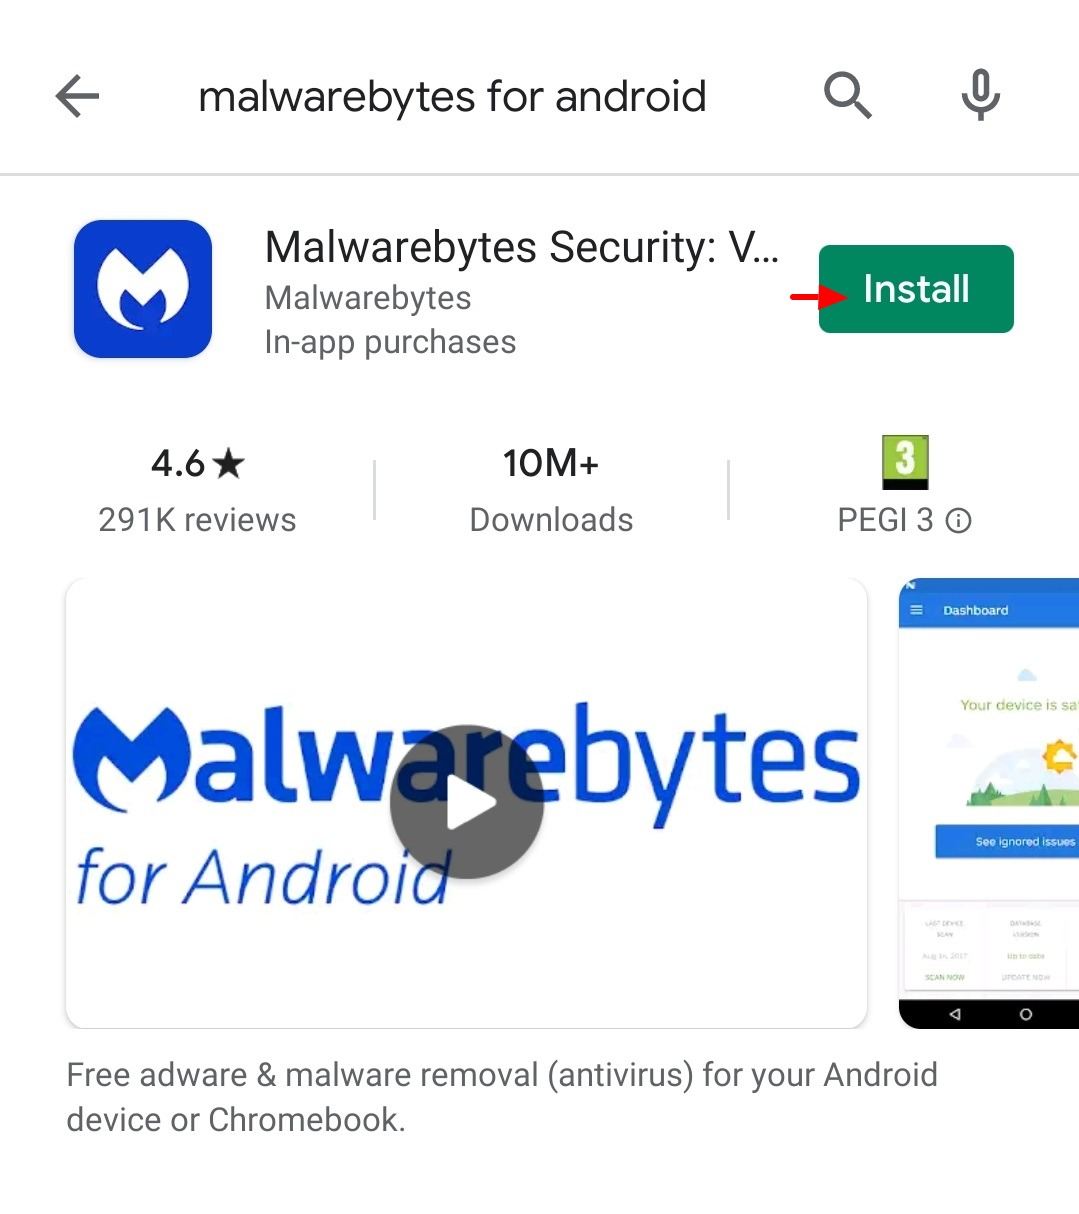 Malwarebytes for Android device 1